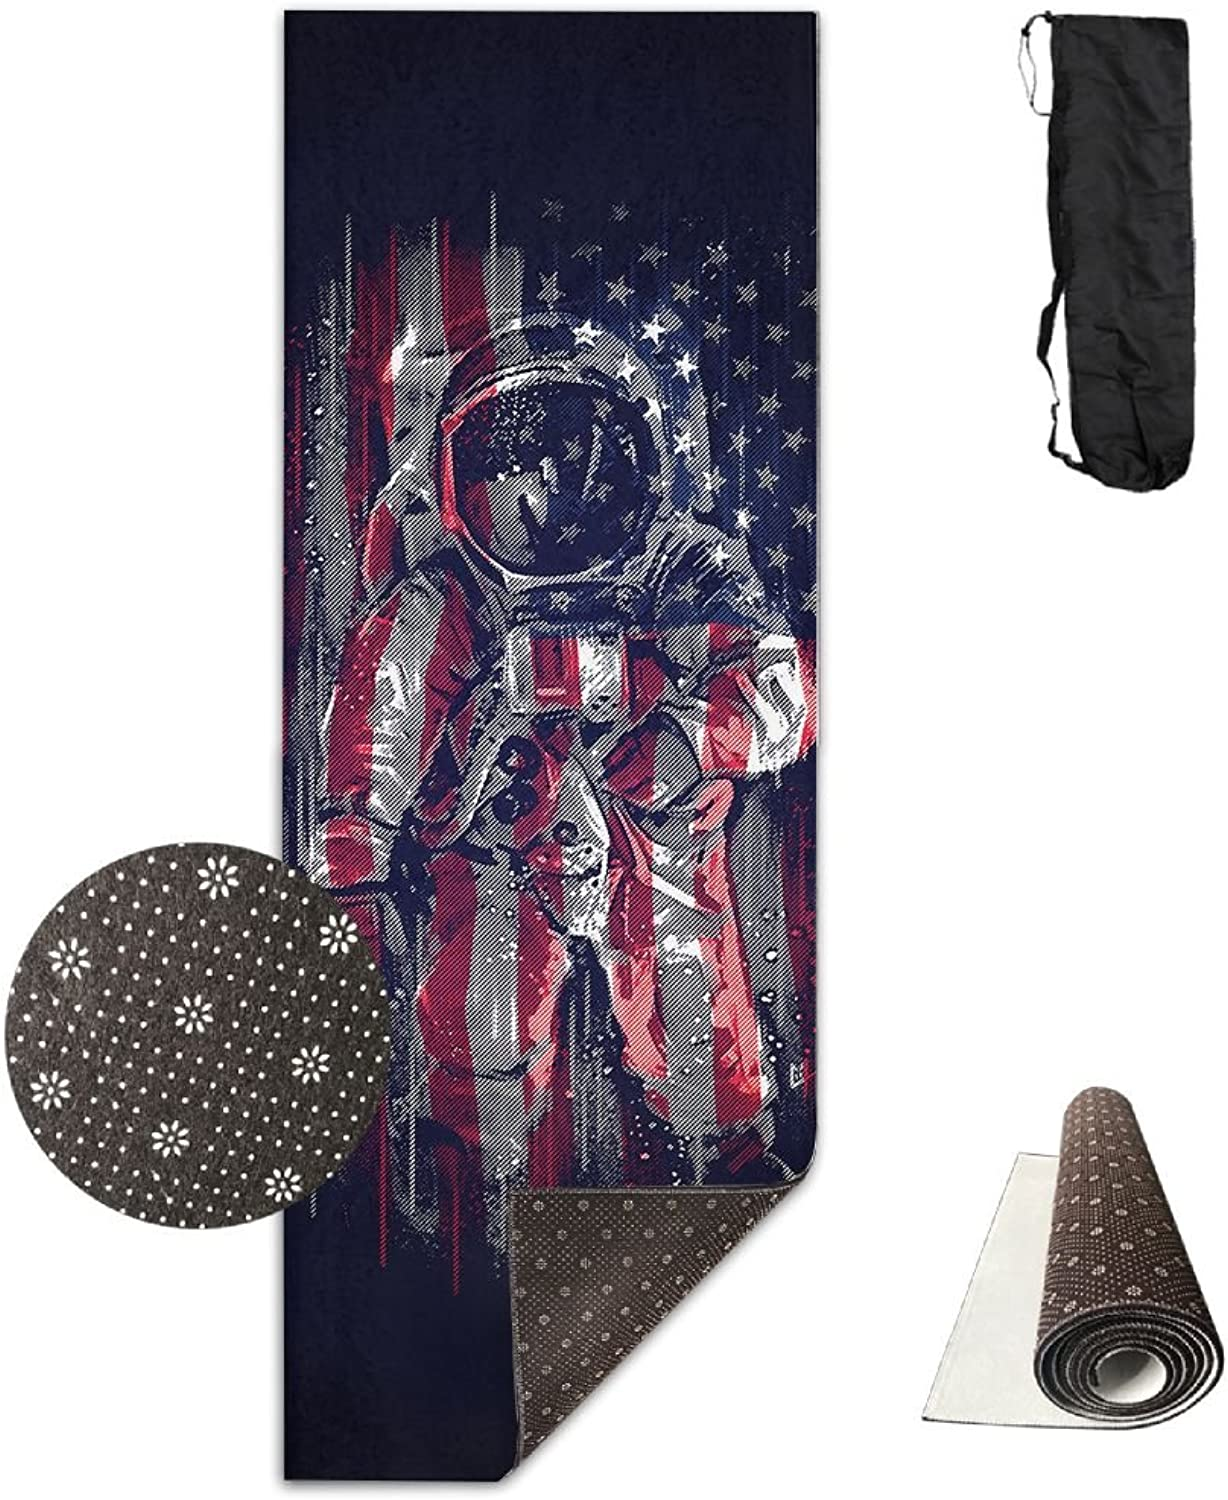 Gym Mat Astronaut Flag Fitness High Density AntiTear Exercise Yoga Mat With Carrying Bag For Exercise,Pilates